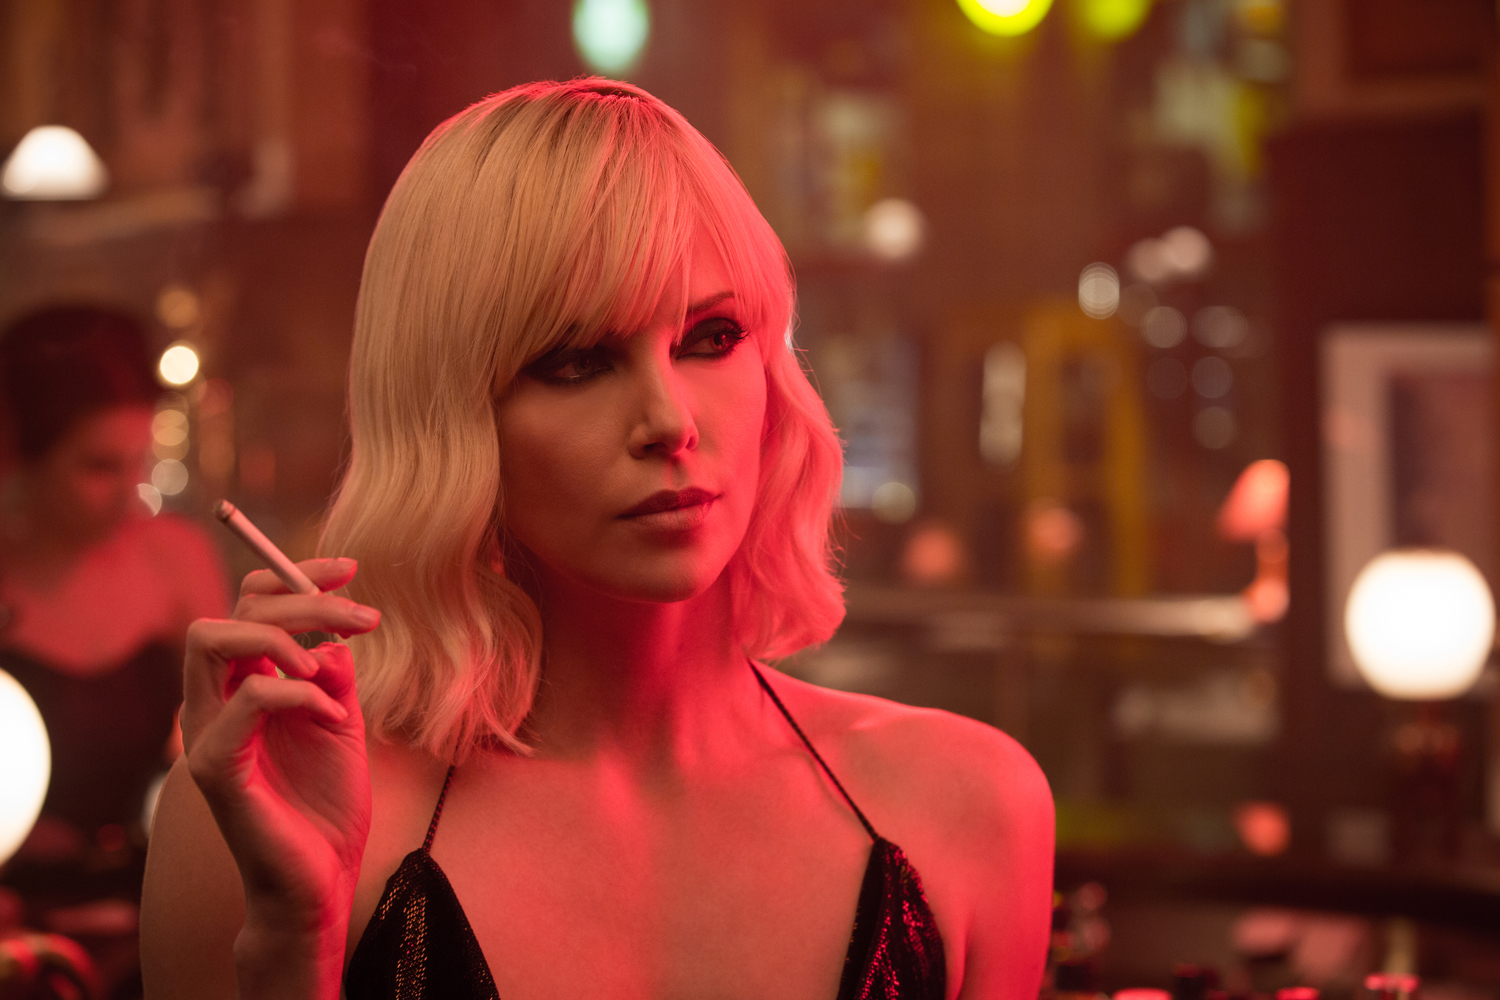 Atomic Blonde Director Wants John Wick Crossover To Happen